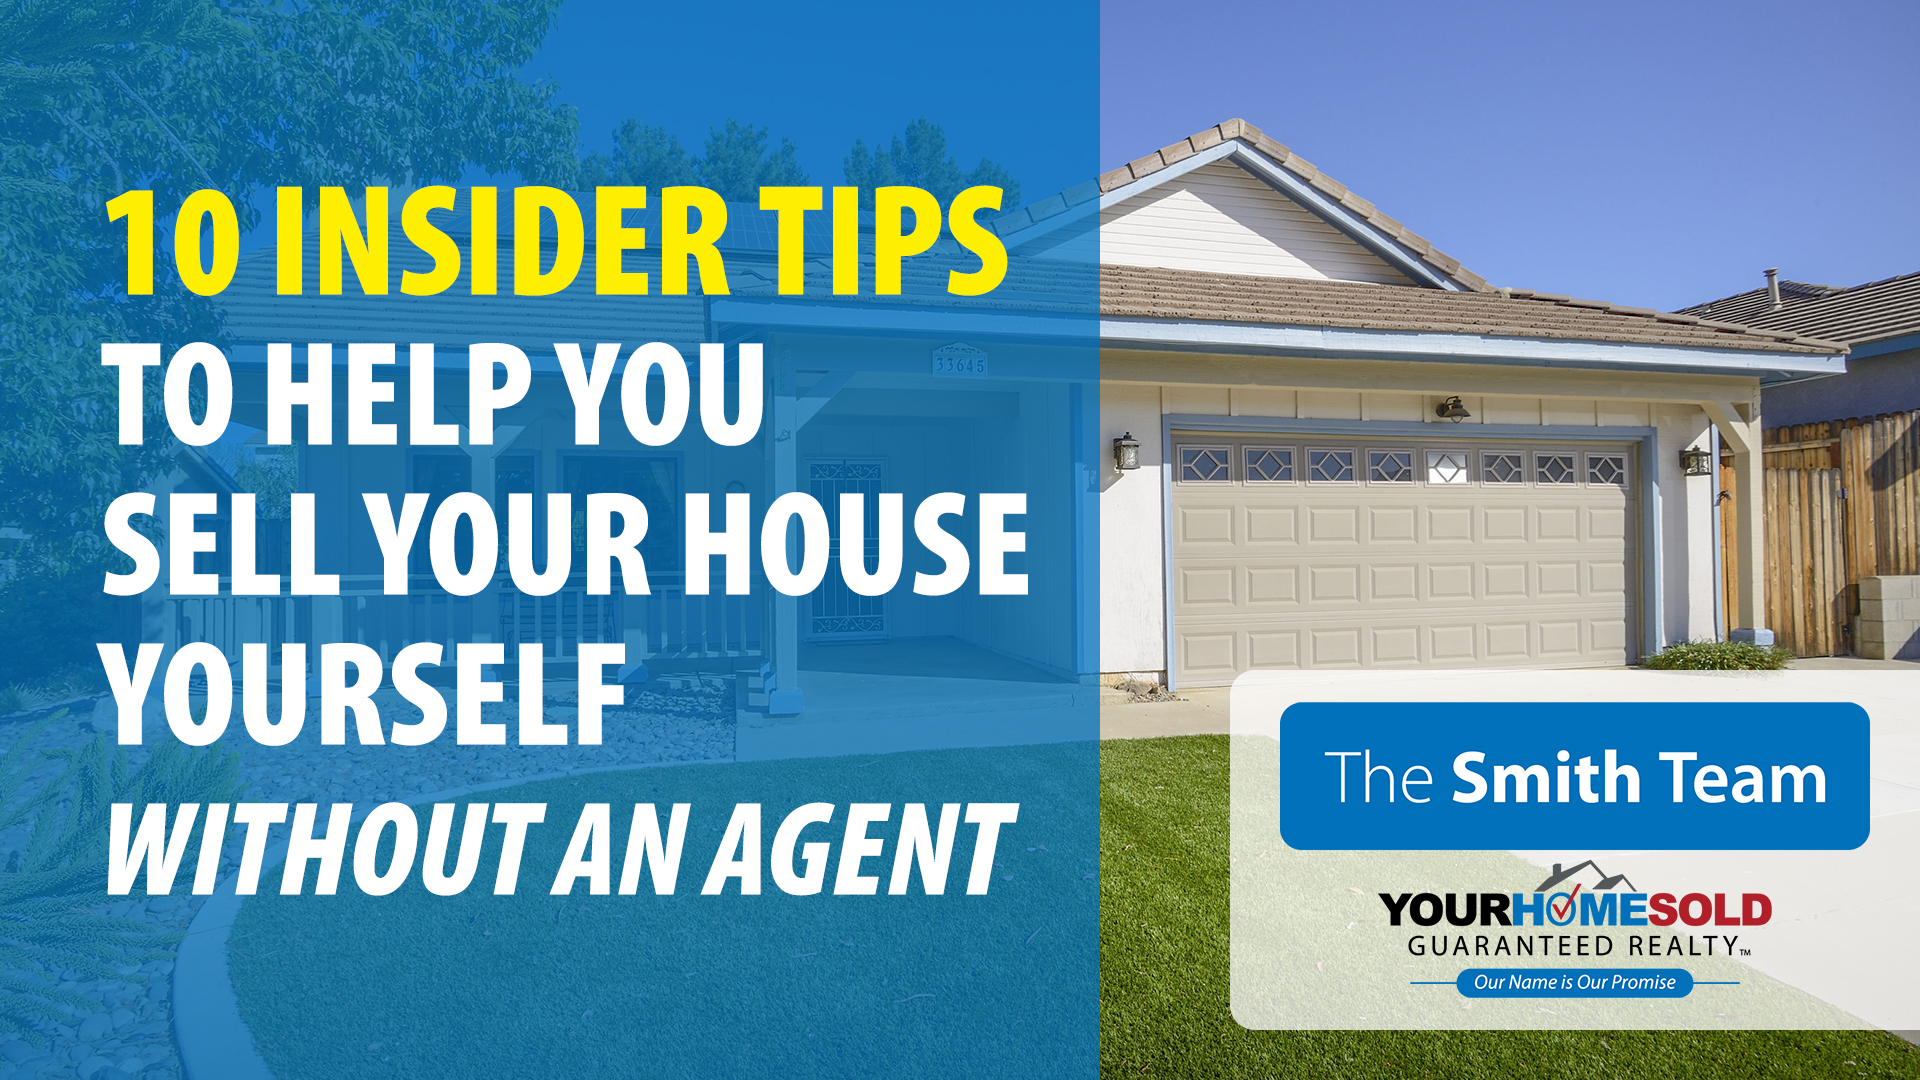 10 Inside Tips for Selling Your Home Yourself